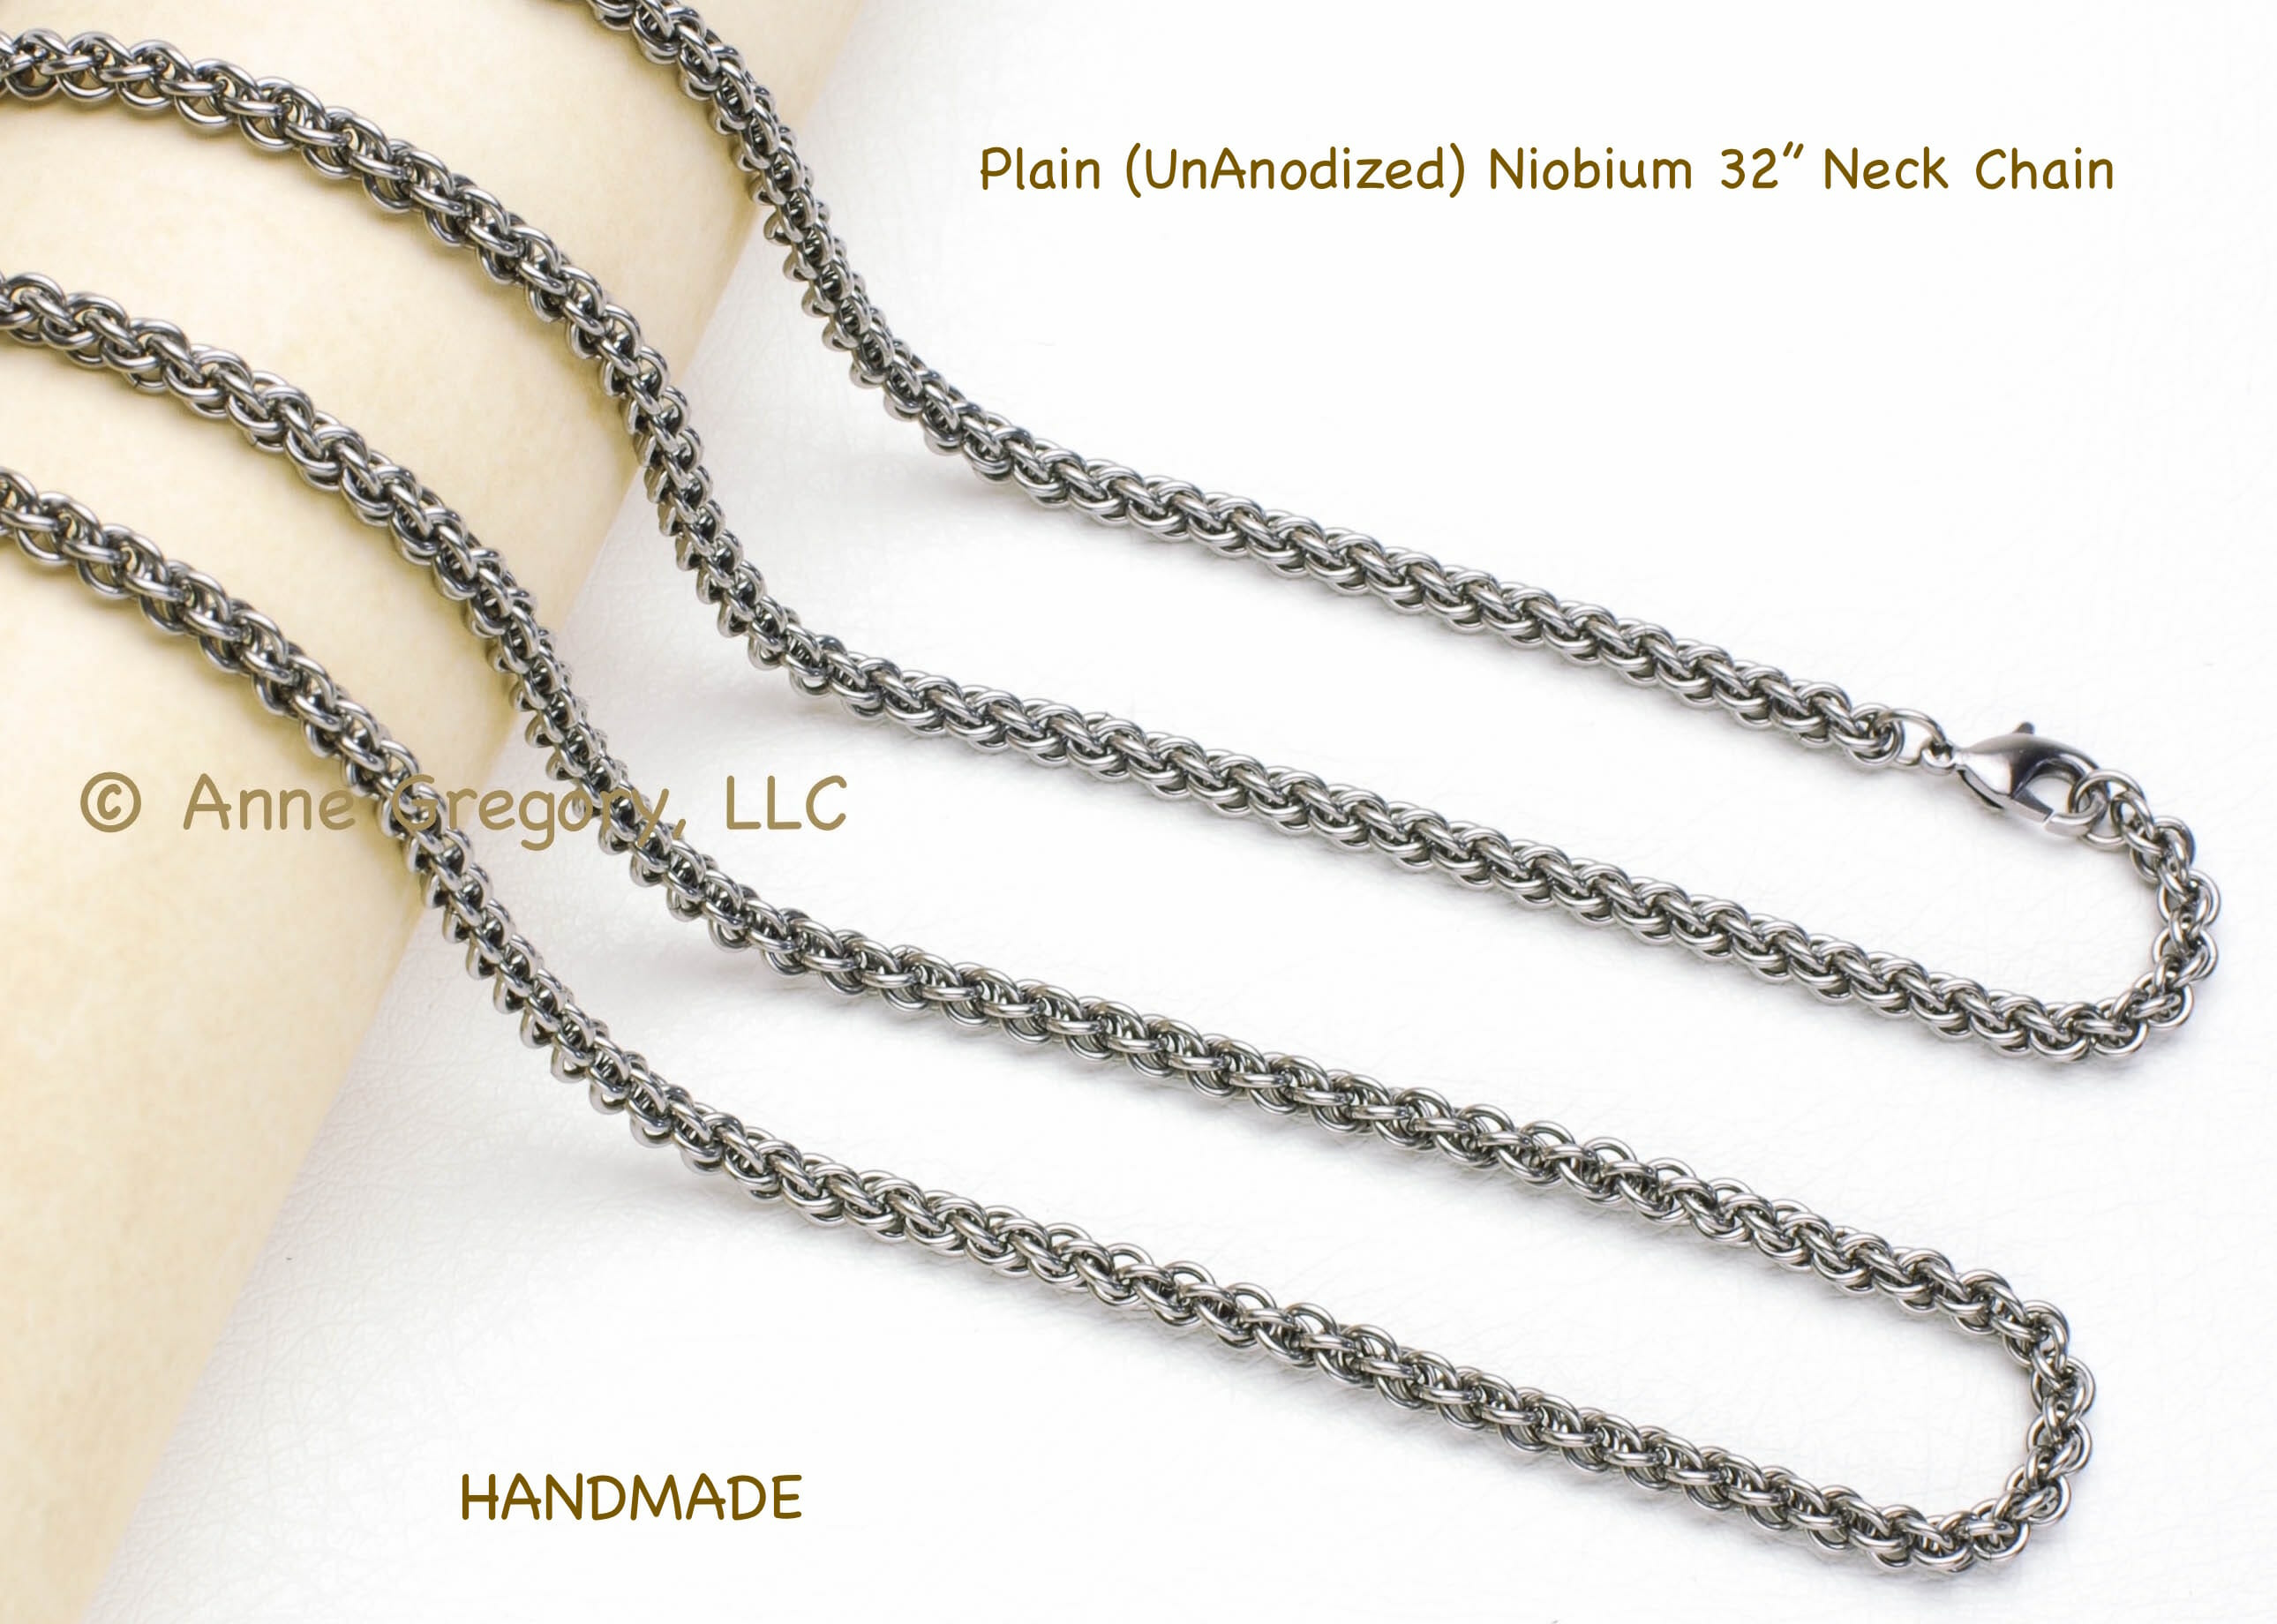 heritage silver products marquise plain designs nguyen jewelry necklace nina